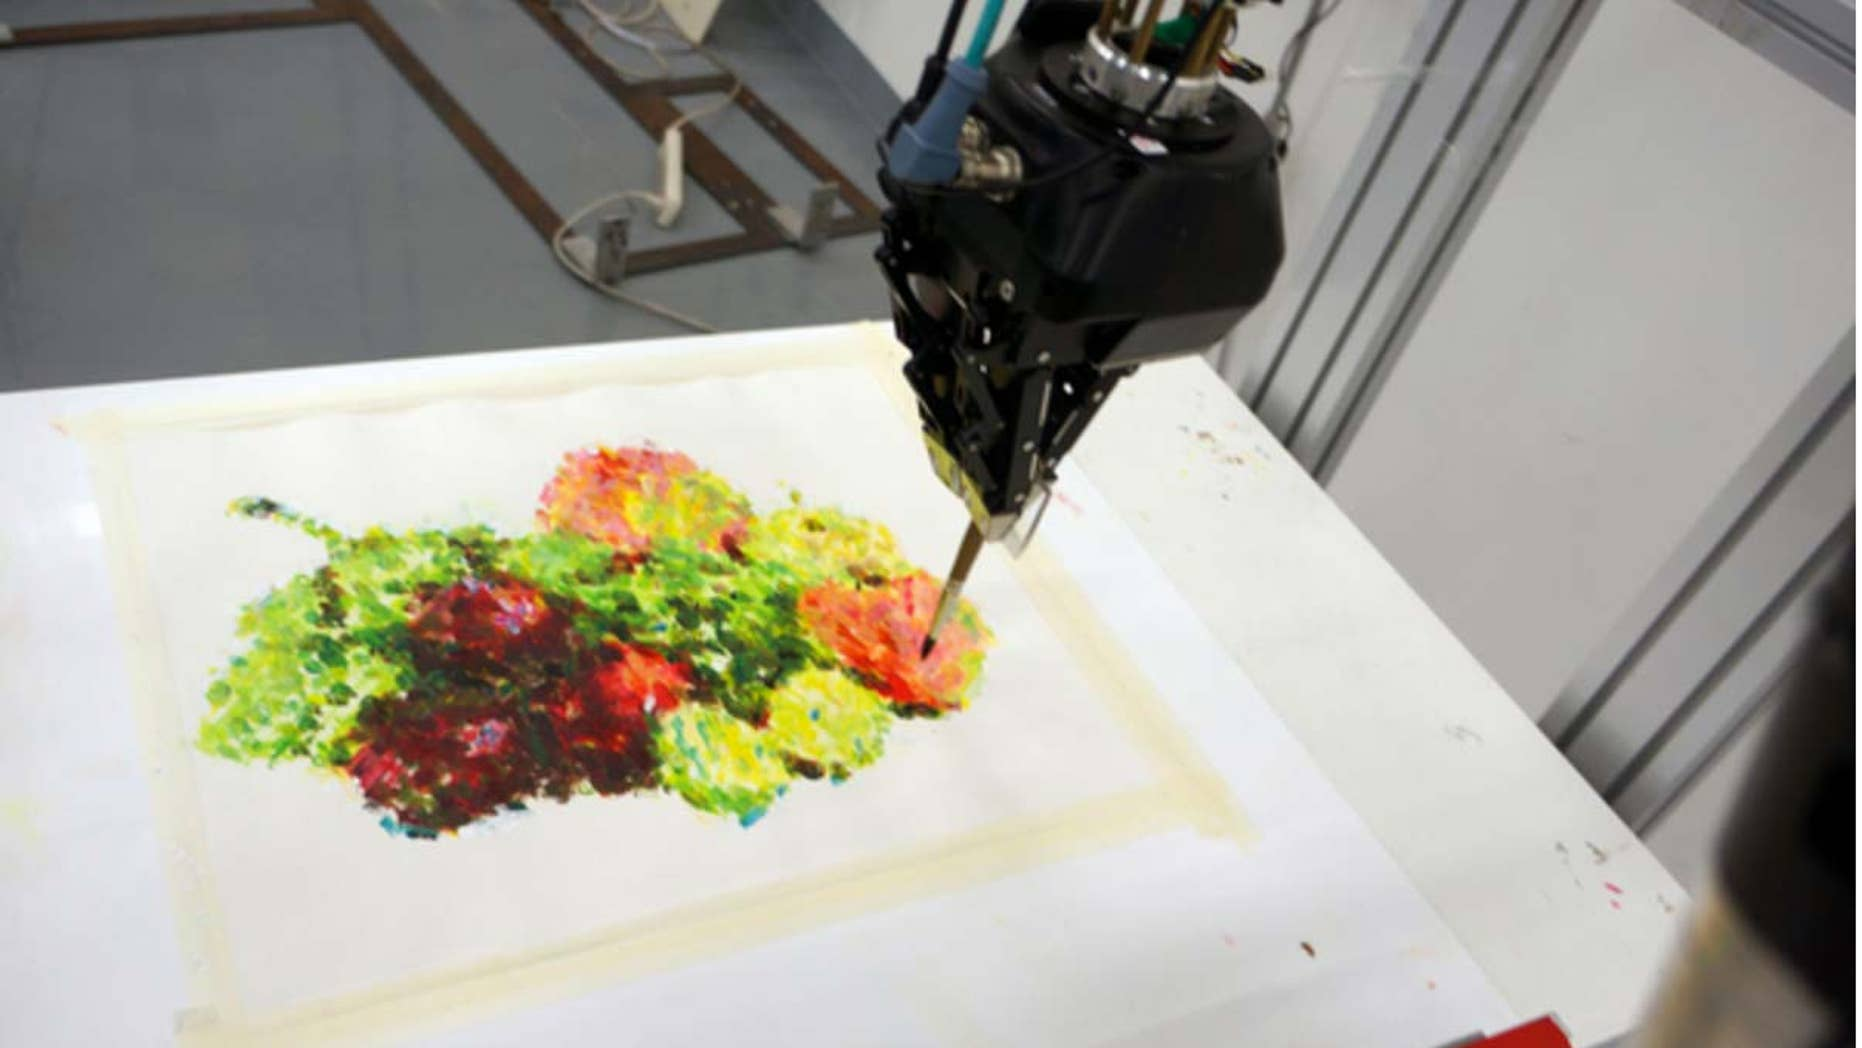 The TAIDA robot won the competition by painting a still life of a bowl of fruit in a classical style.